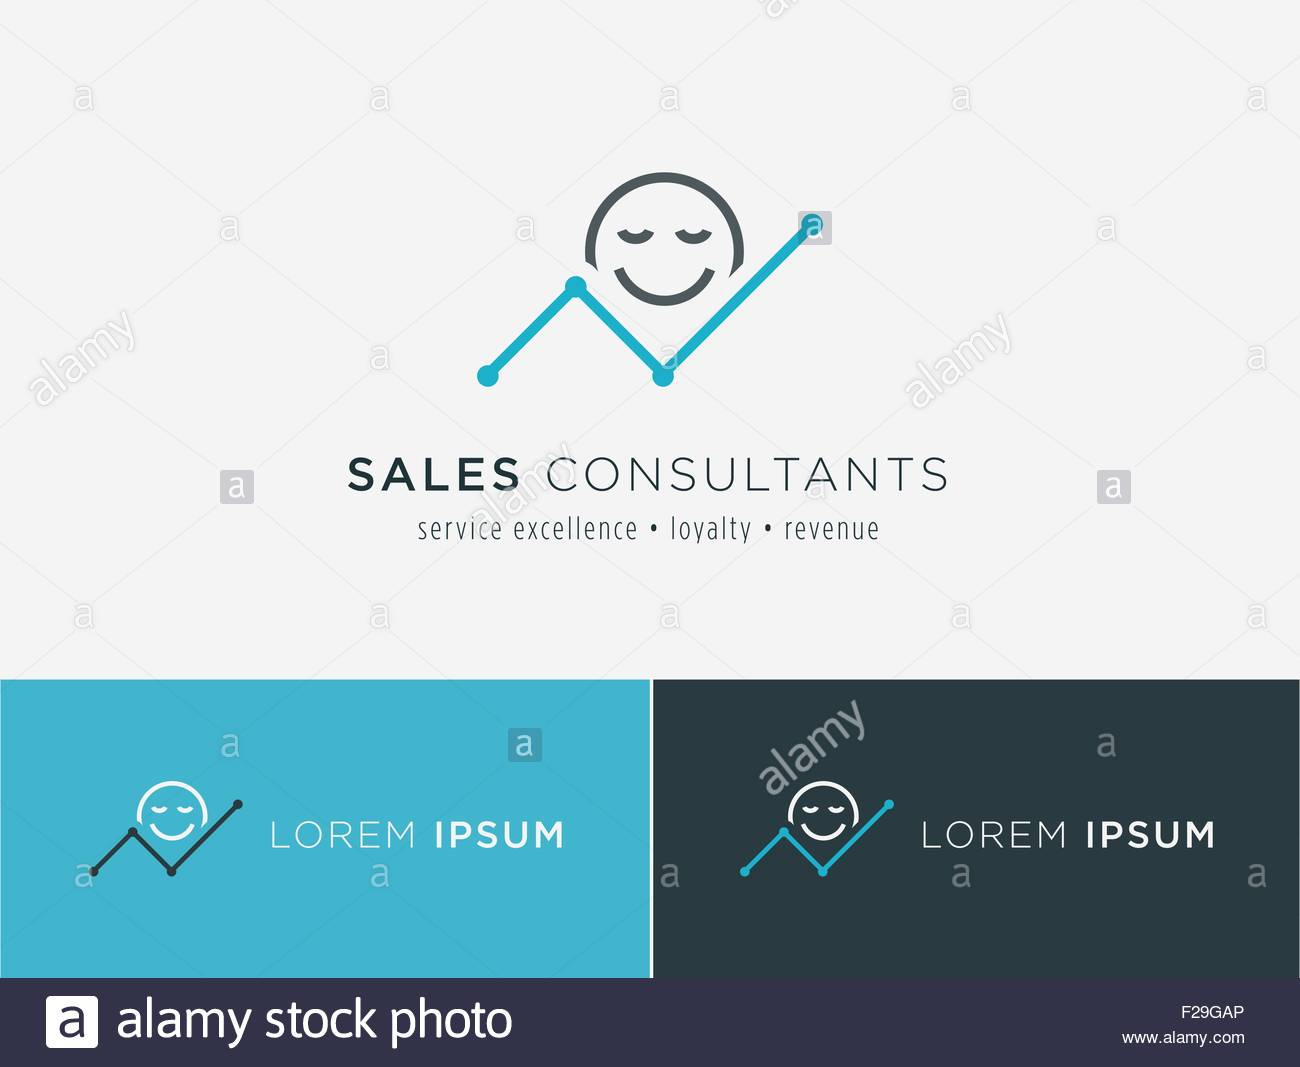 Sales consultant, sales trainer or mystery shopper company logo. Customer satisfaction and growing revenue chart - Stock Image